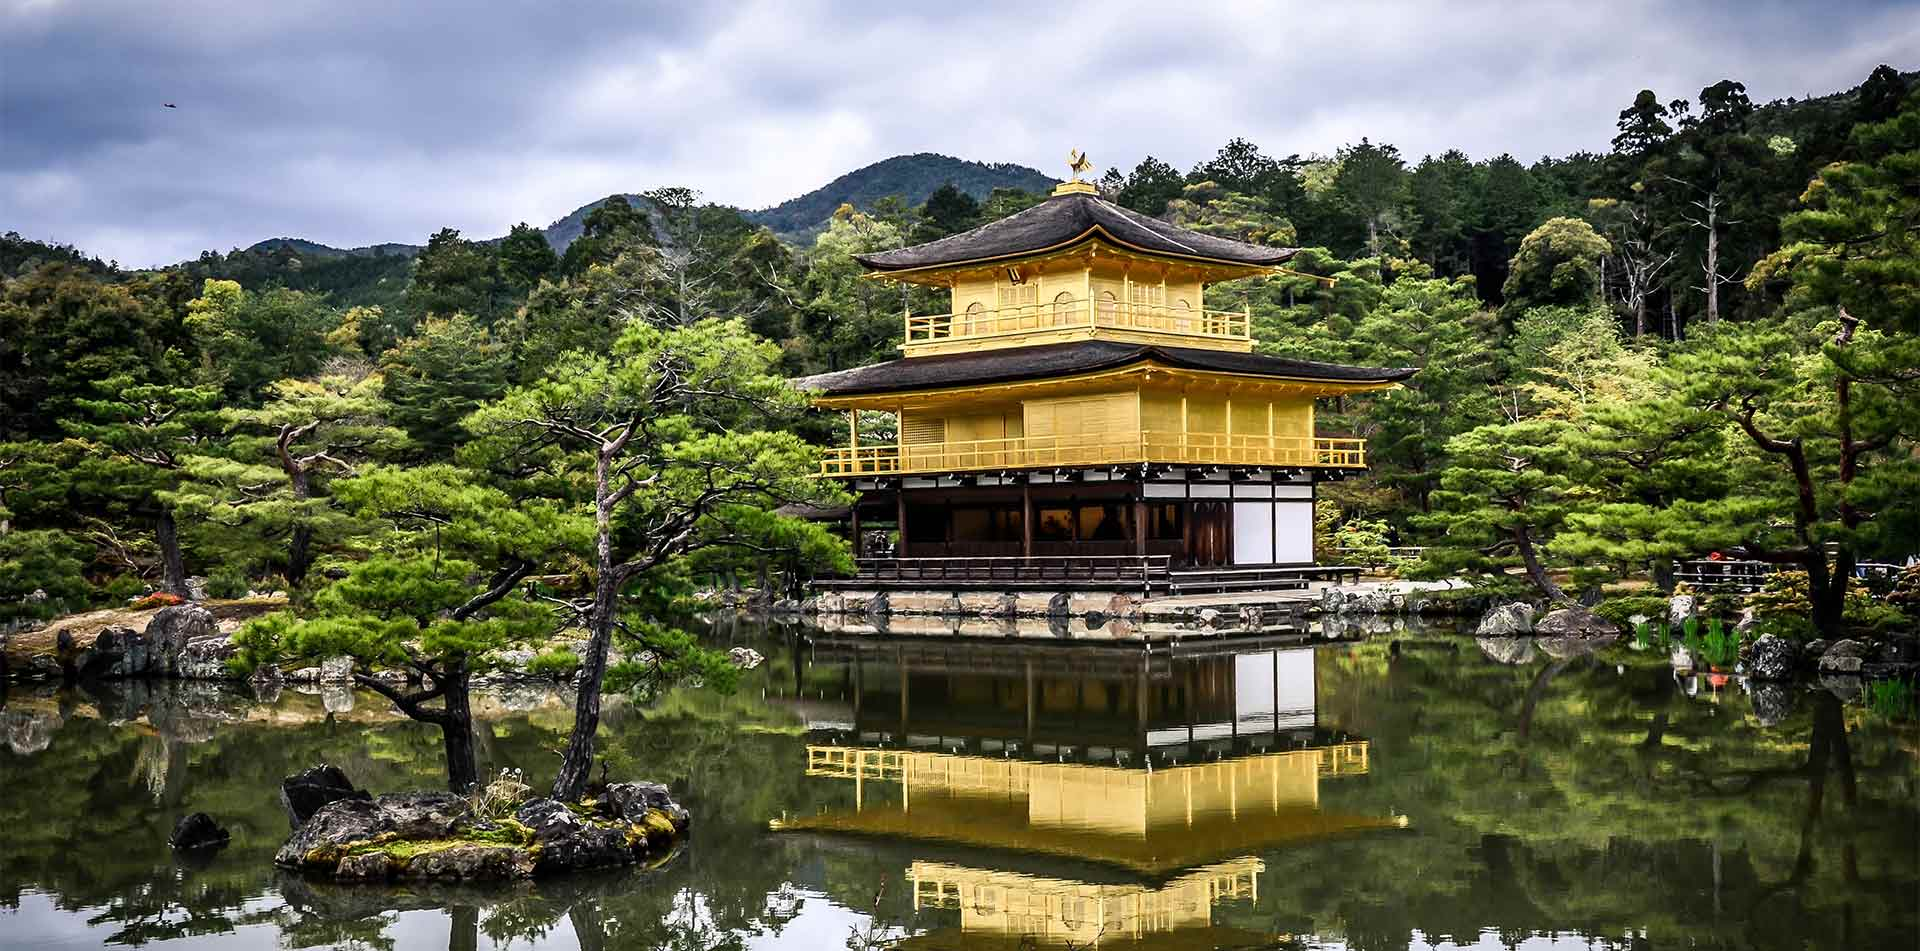 Asia Japan Kyoto Kinkaku-ji Golden Pavilion Zen Buddhist temple with beautiful gardens - luxury vacation destinations